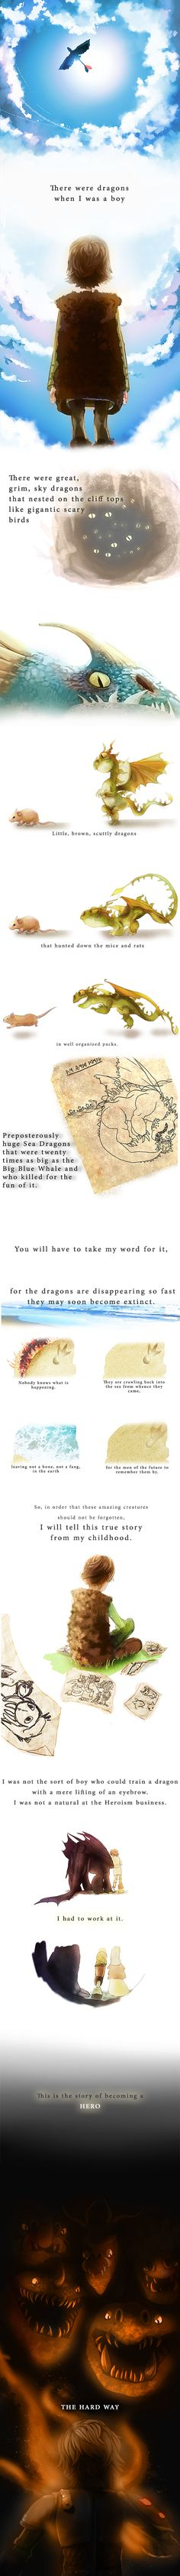 Beautiful ♡ How to Train Your Dragon ^.^ ♡